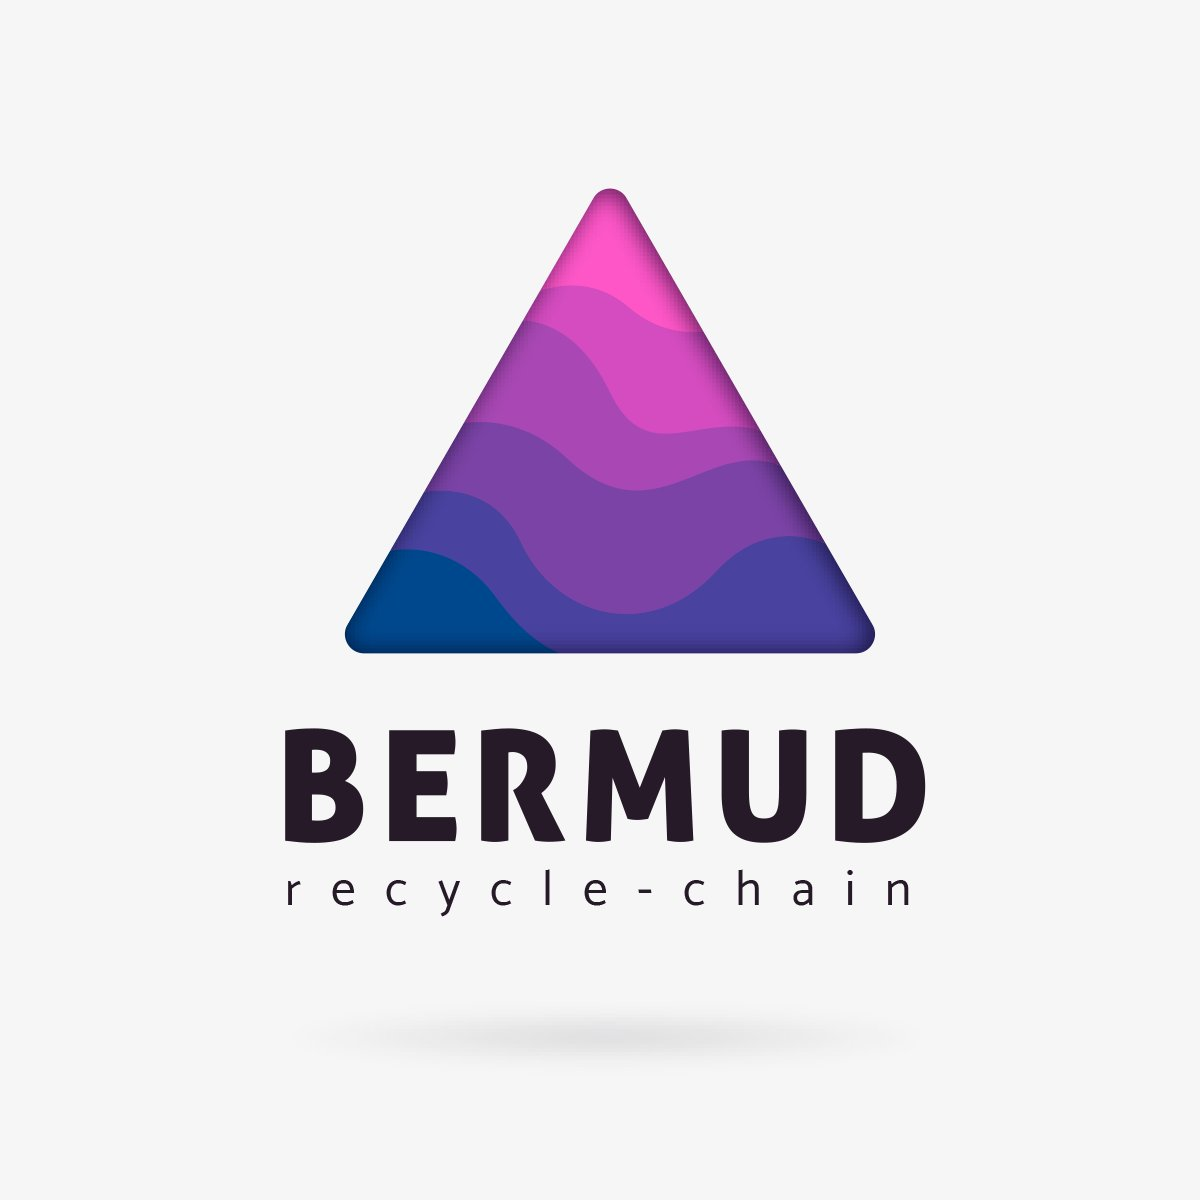 Hi people! The Bermud project should start very shortly...  This is the first official LOGO for the brand.  What you guys think? Blue is for water, and purpure for the stratosphere.  Mysterious fog wave inside of a triangular shape. #invest #Crypto  #recycledpic.twitter.com/wOBvKbvOHs